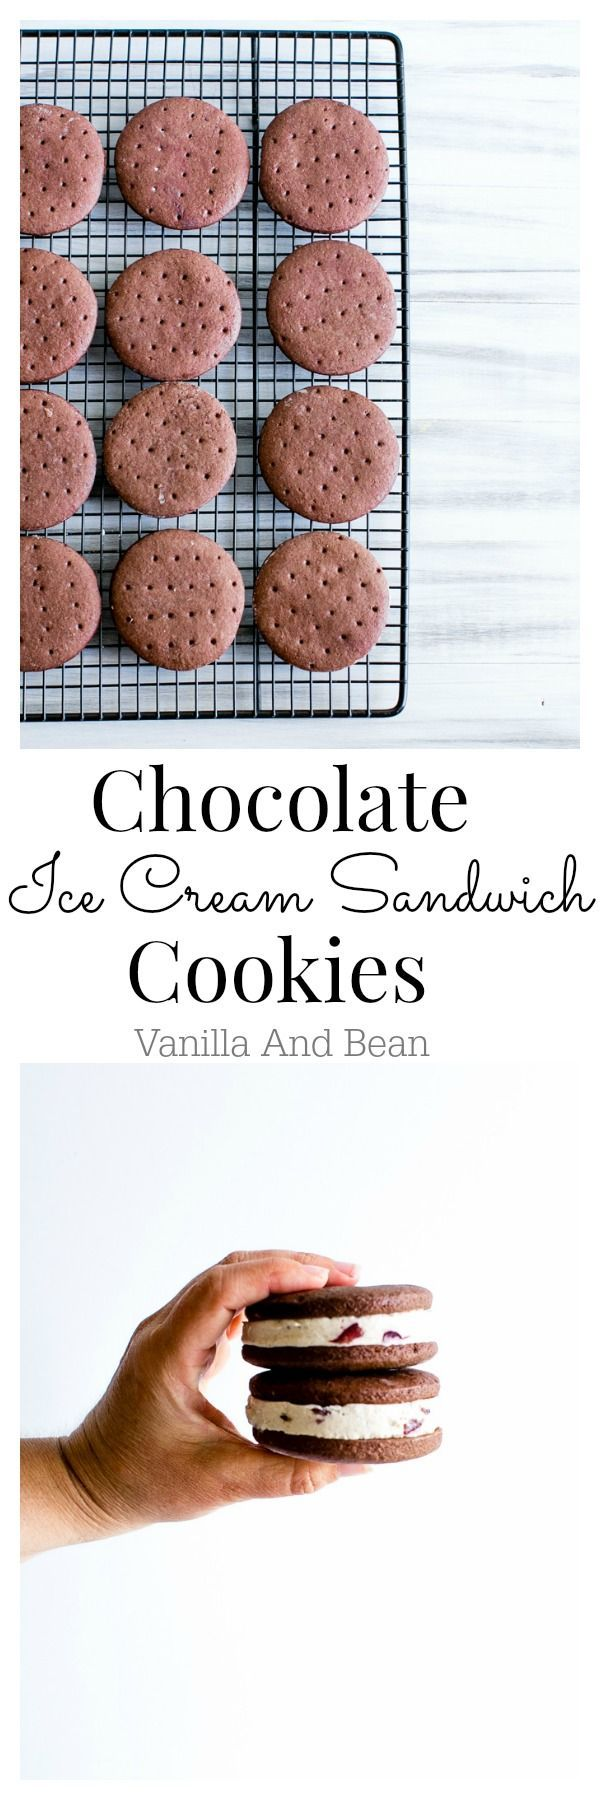 Slip your favorite ice cream between these pillow soft, chocolatey cookies. Fun to make and eat! | Dairy & Egg Free, Vegan | Vanilla And Bean